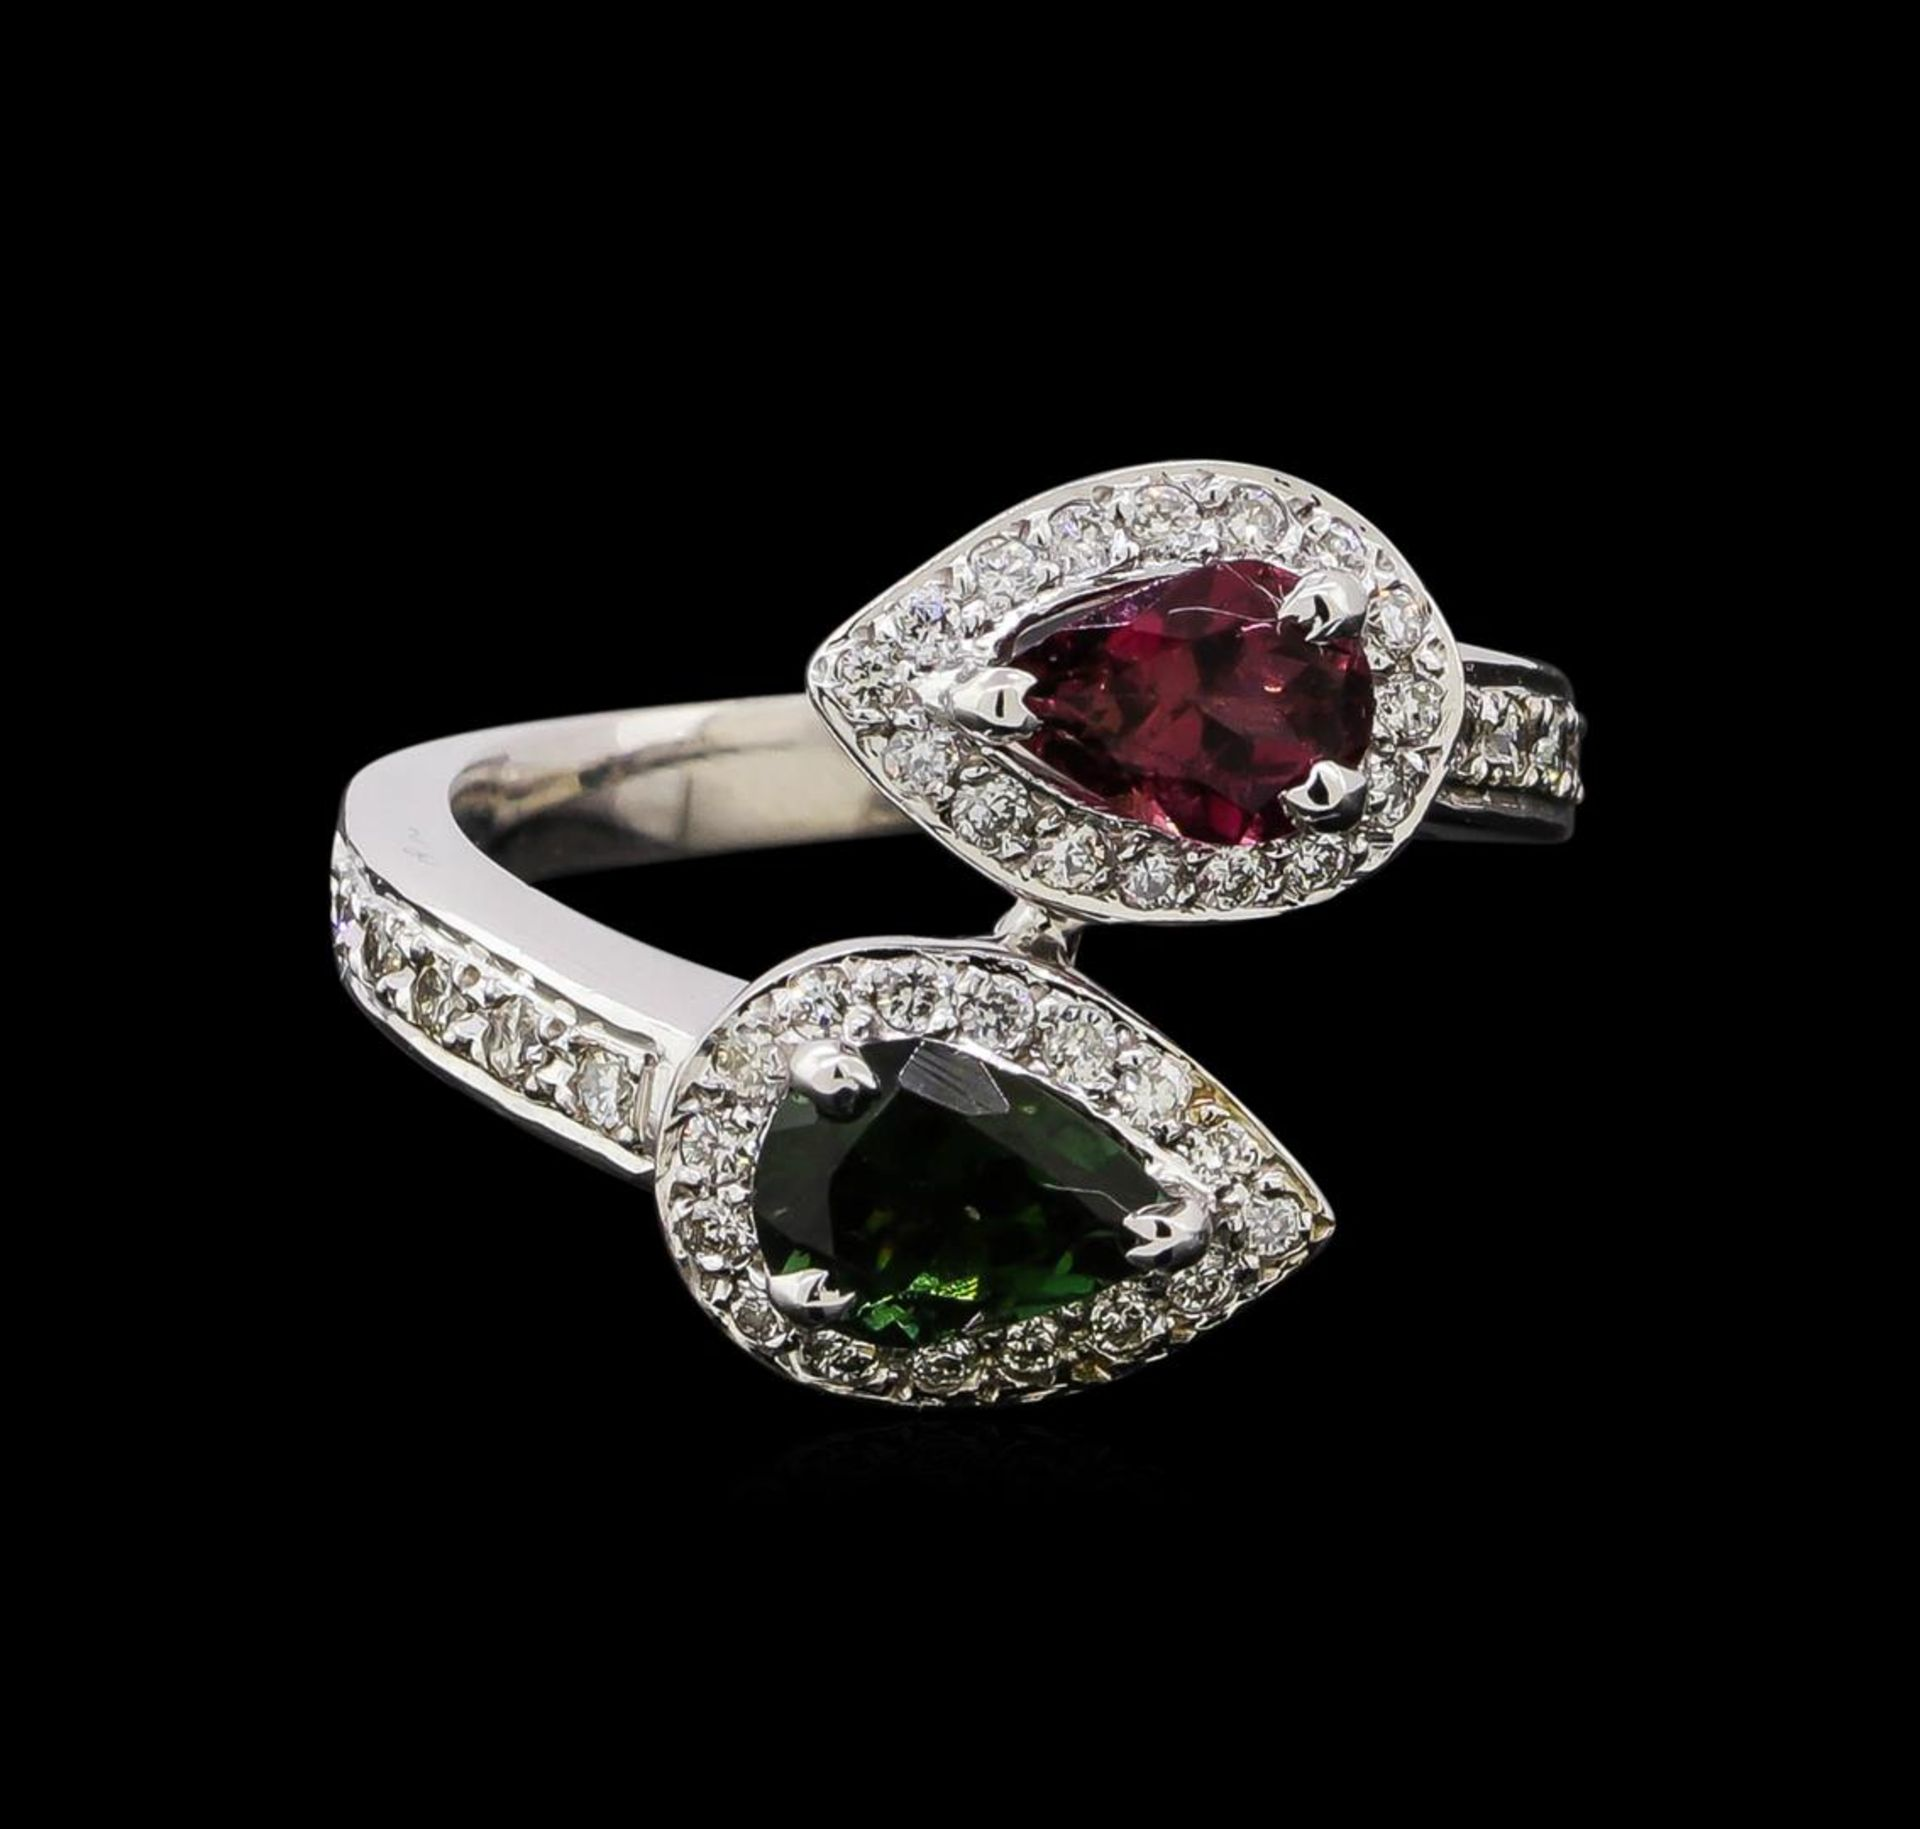 1.22 ctw Tourmaline and Diamond Ring - 14KT White Gold - Image 2 of 4